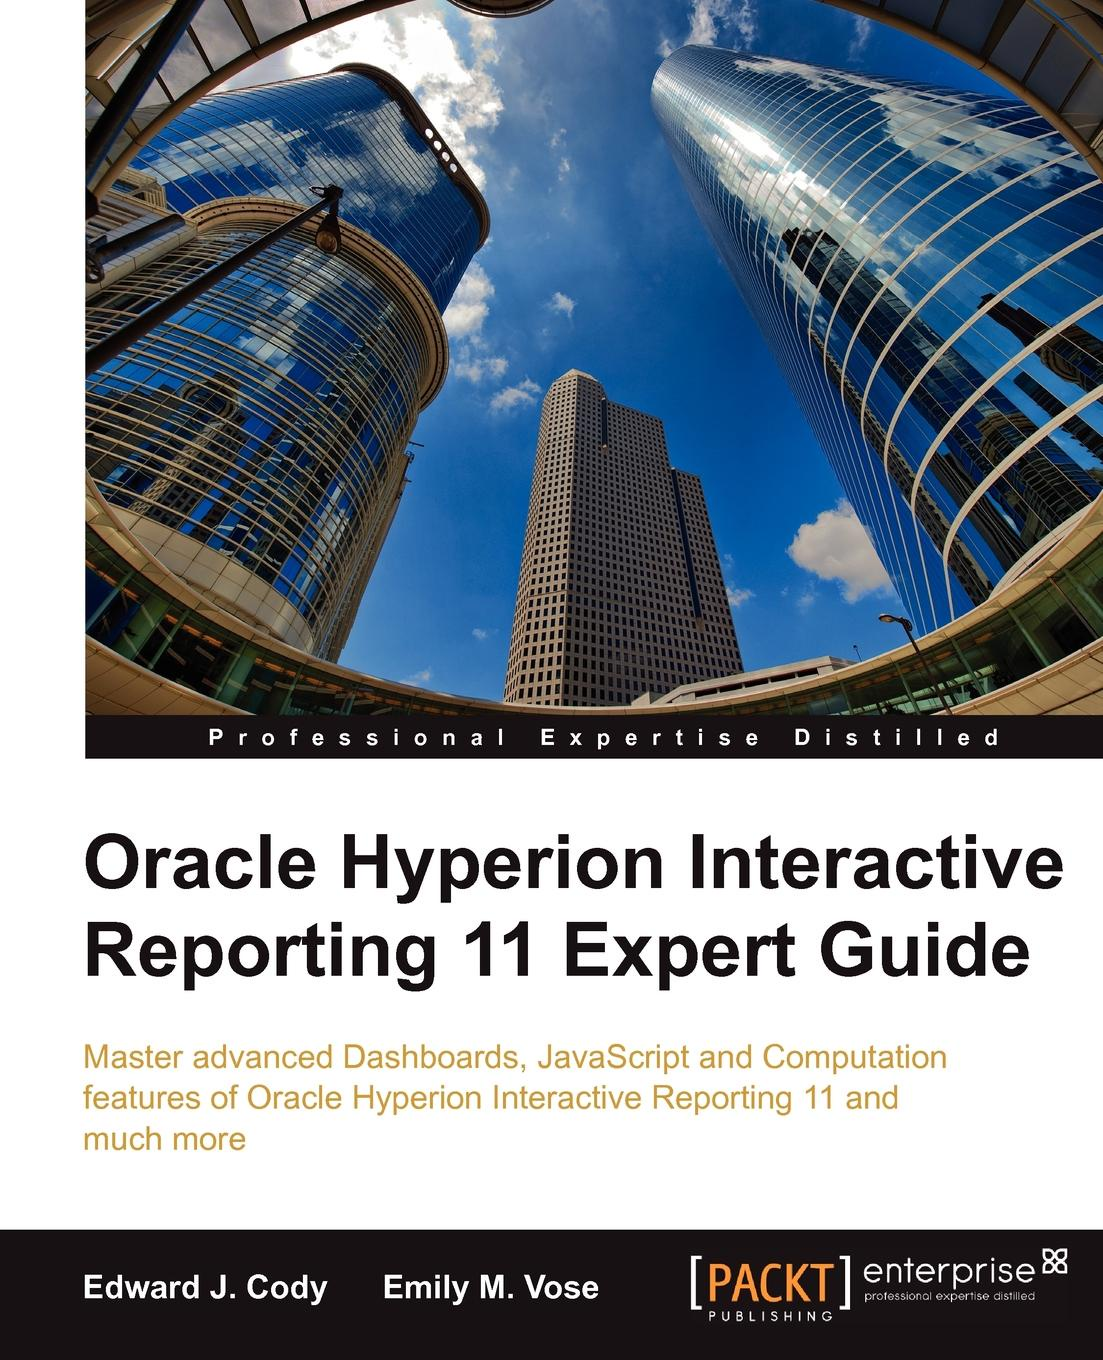 Edward J. Cody, Emily M. Vose Oracle Hyperion Interactive Reporting 11 Expert Guide bradley preber j financial expert witness communication a practical guide to reporting and testimony